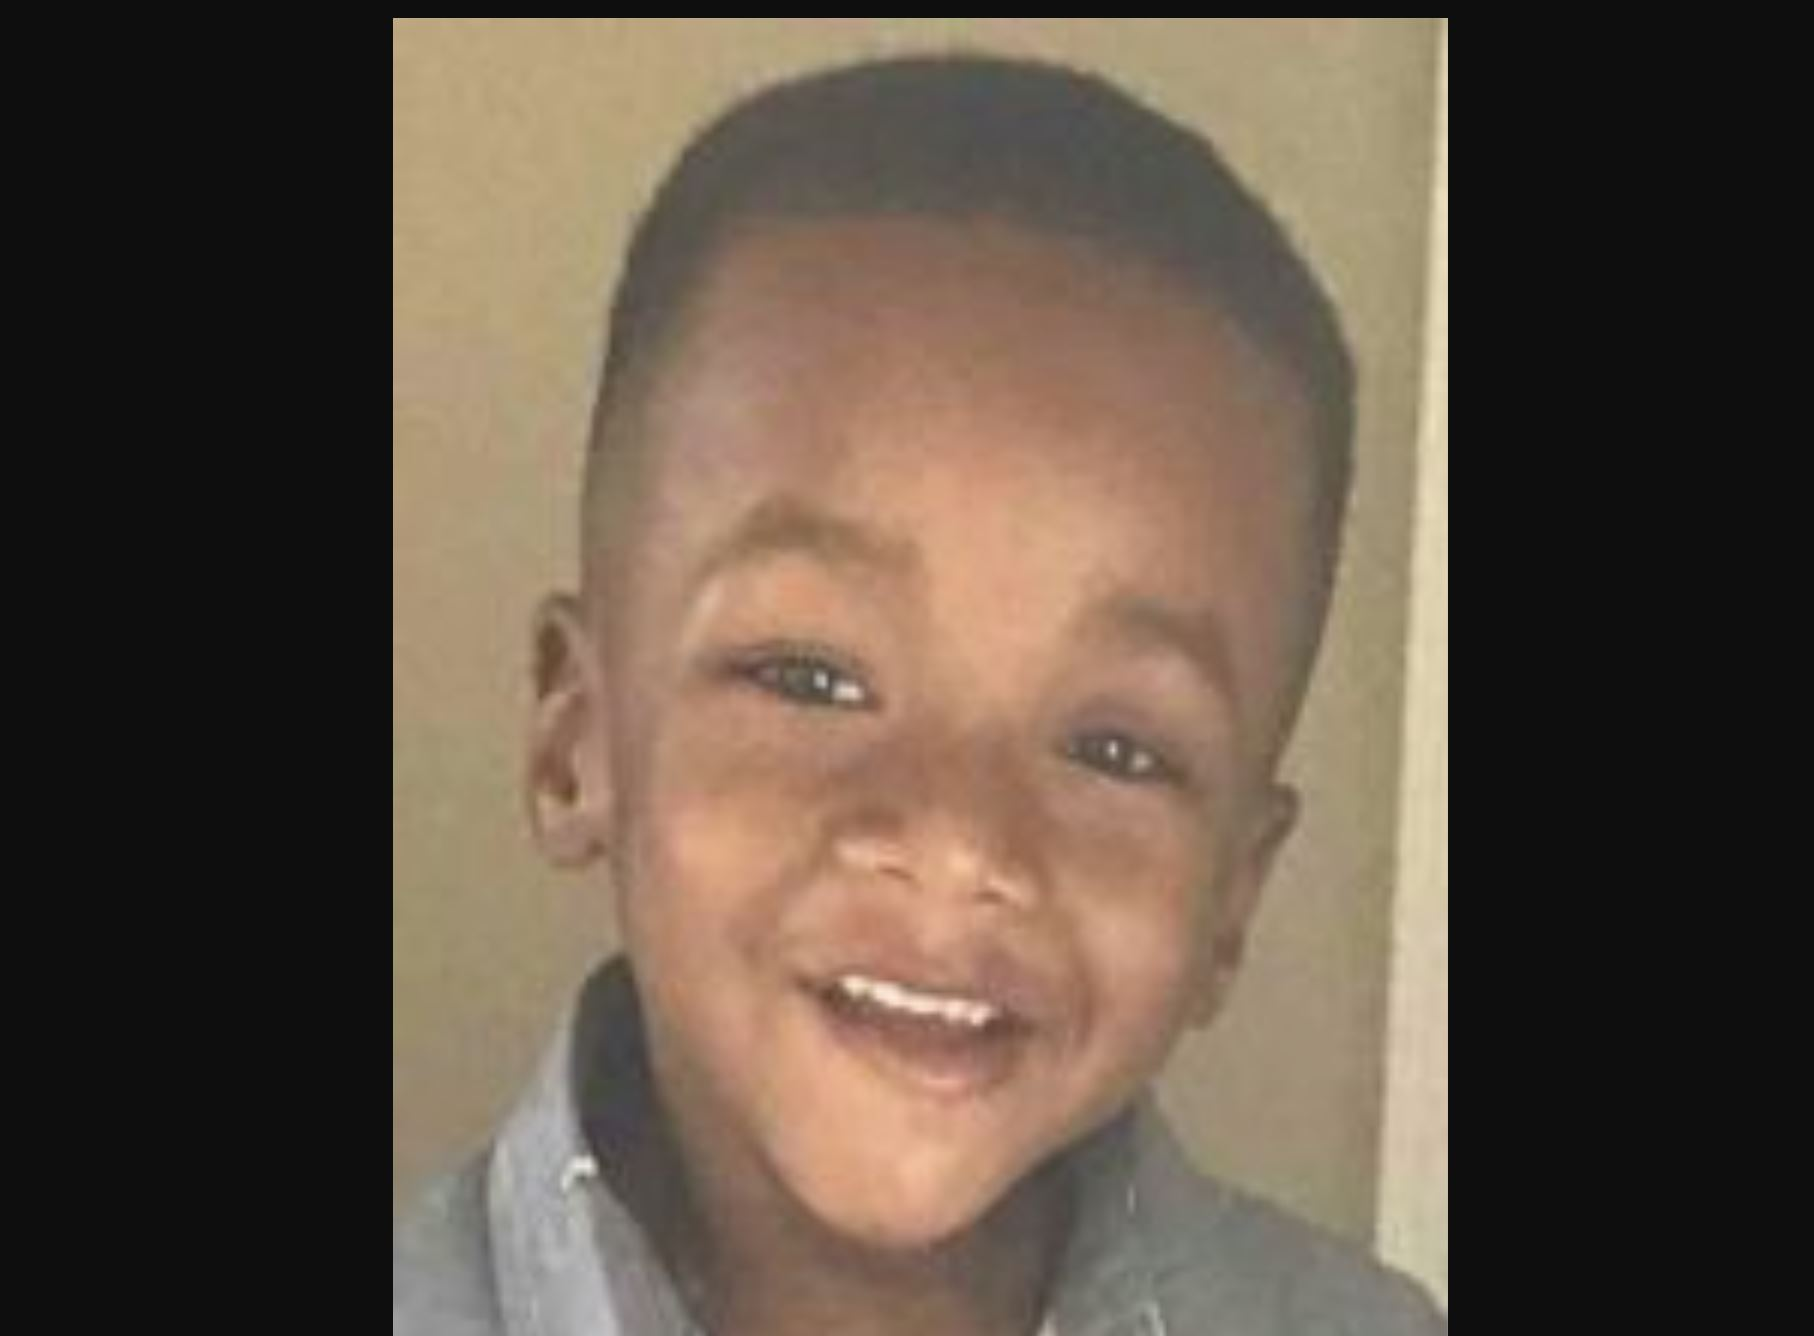 Alabama Law Enforcement Agency Issues Emergency Missing Child Alert for 4-year-old in Jefferson County